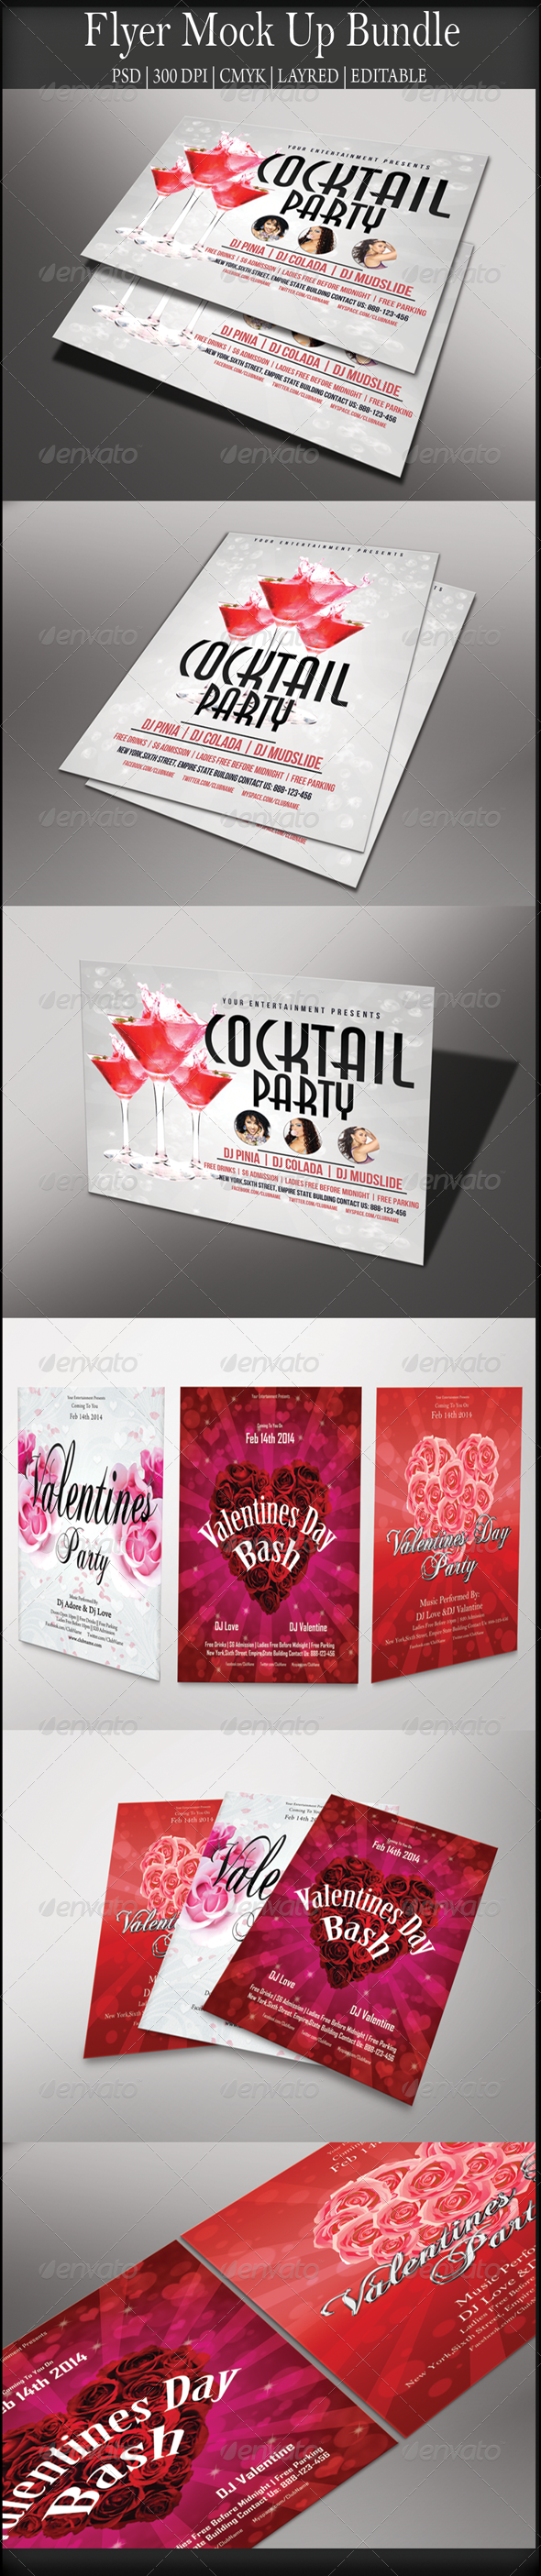 GraphicRiver Flyer Mock Up Bundle 8490898